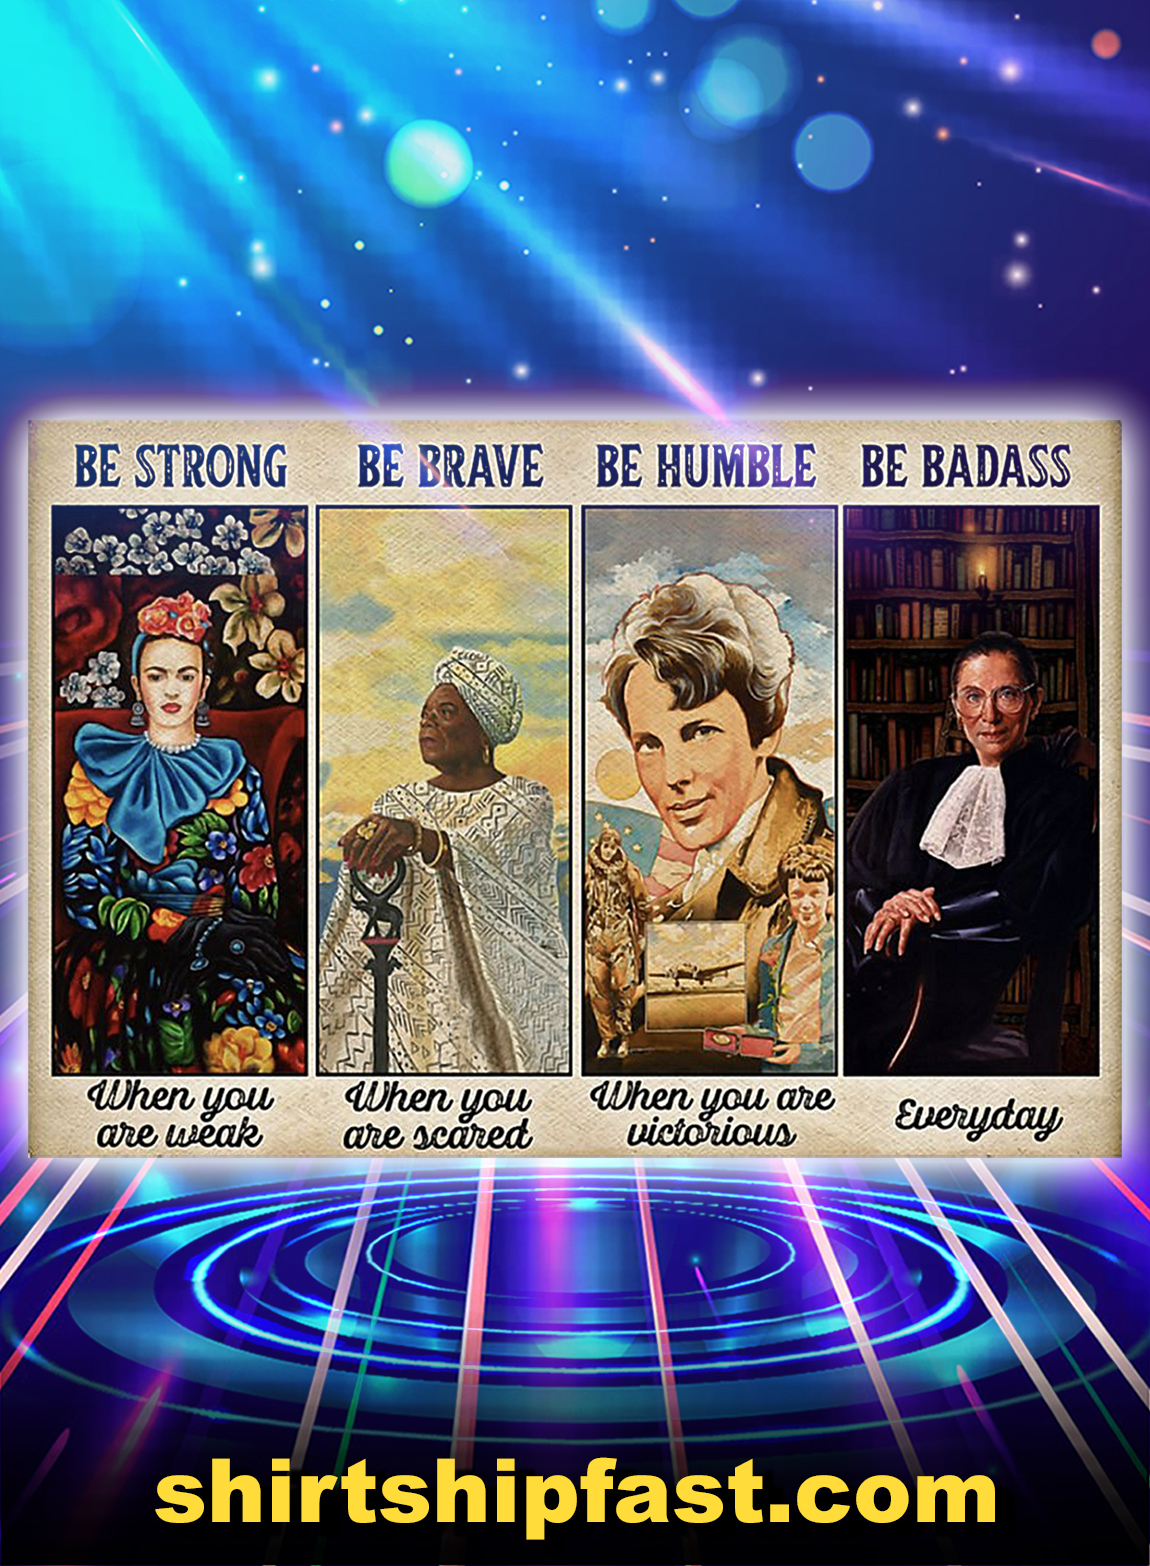 Feminist Frida Kahlo RBG be strong be brave be humble be badass poster - A2